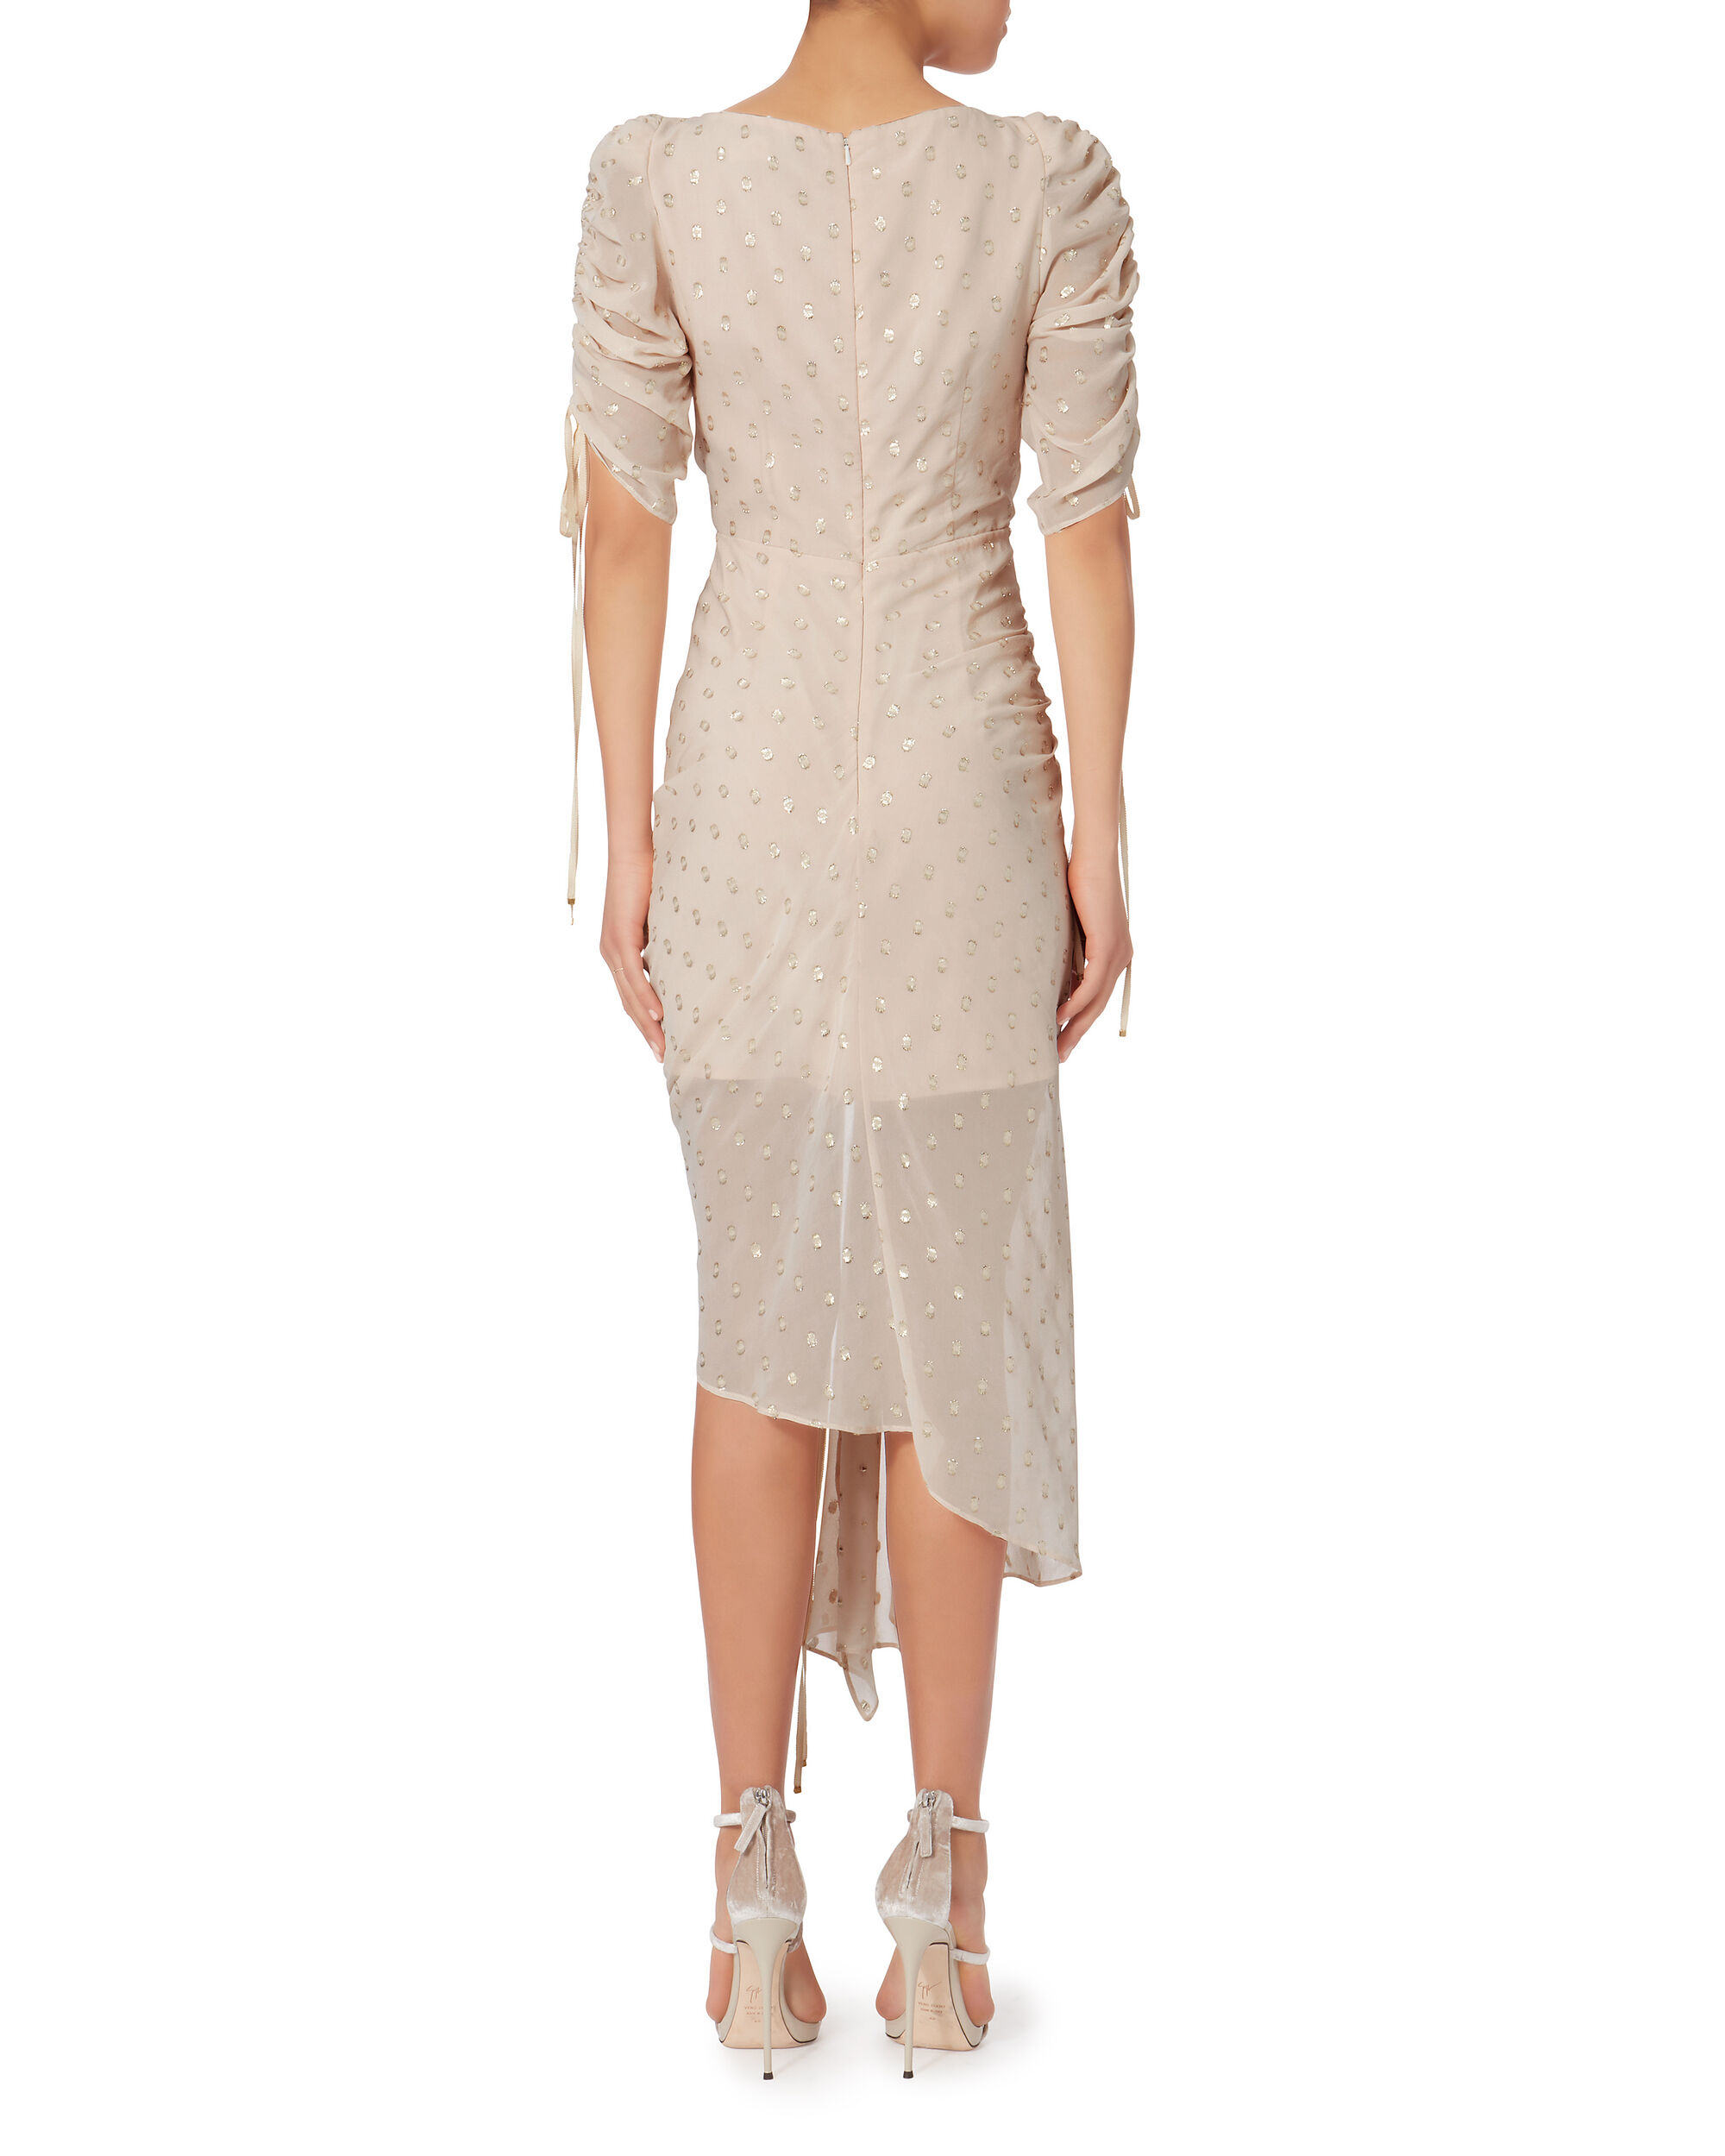 I Feel It Coming Ruched Dress, WHITE, hi-res